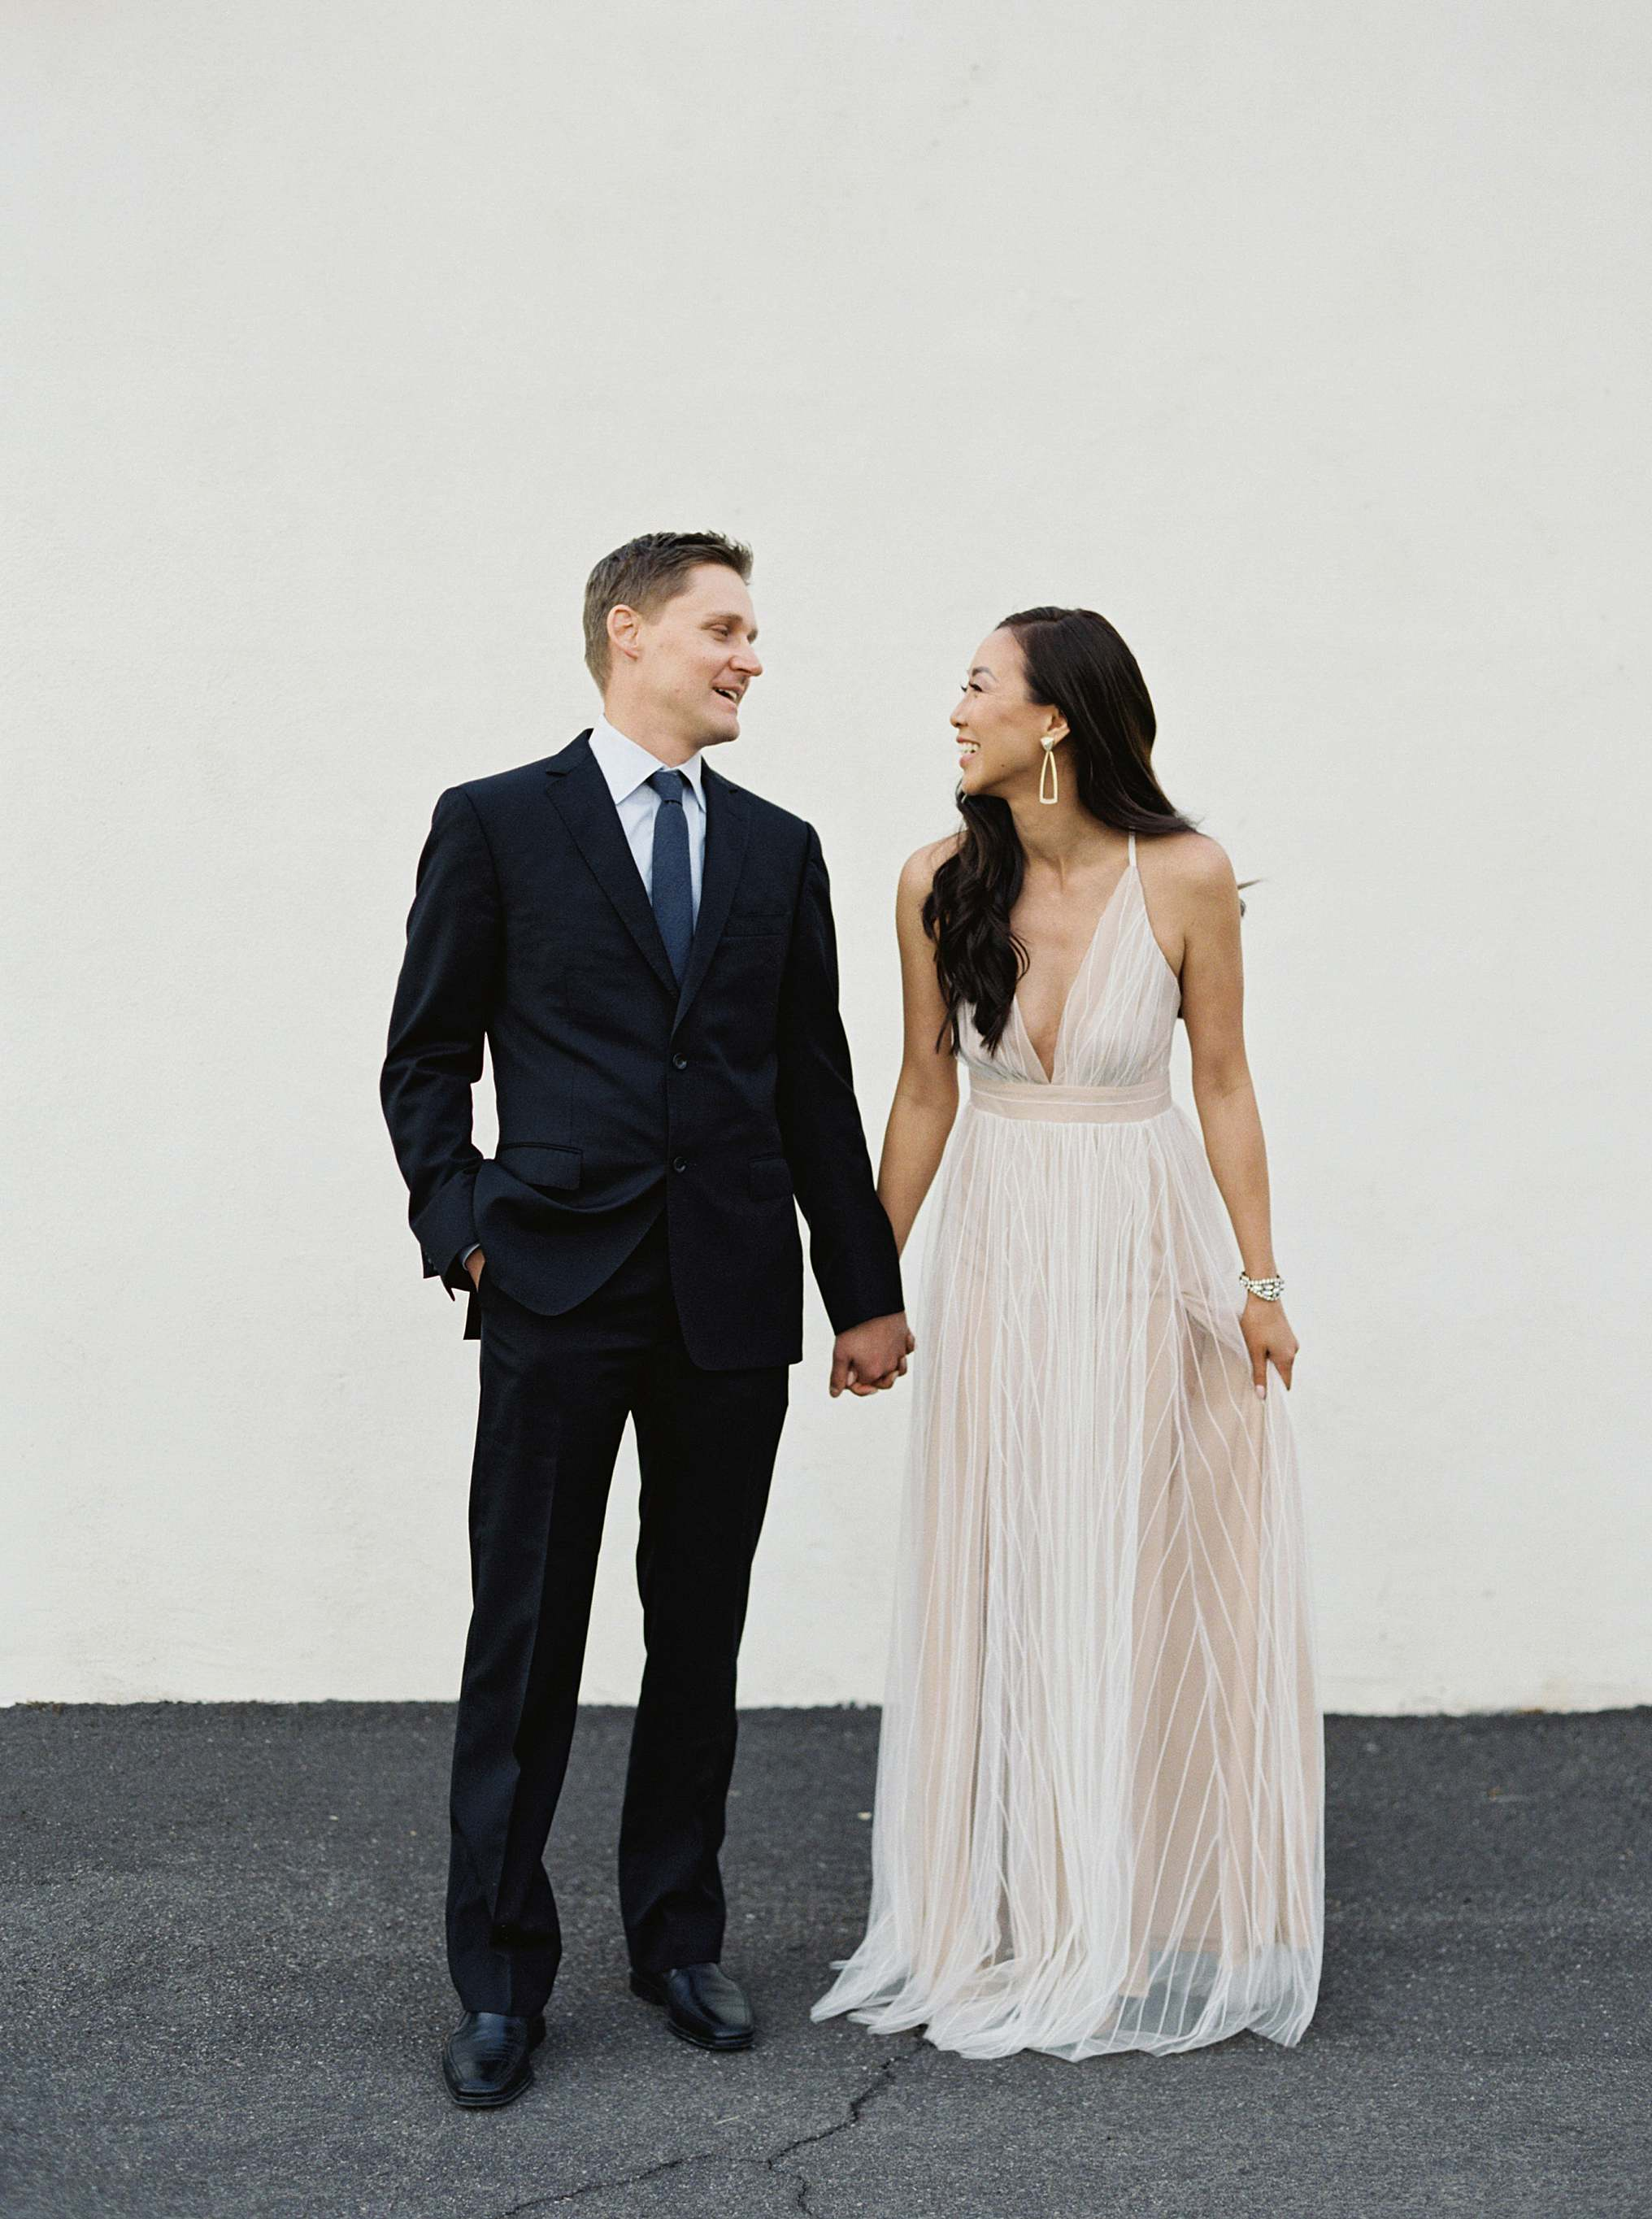 couple pose idea clean white background engagement wedding shoot Inspo bridal engagement photo idea white tulle dress glam engagement shoot brandy Jackson film photographer lifestyle blogger Diana elizabeth